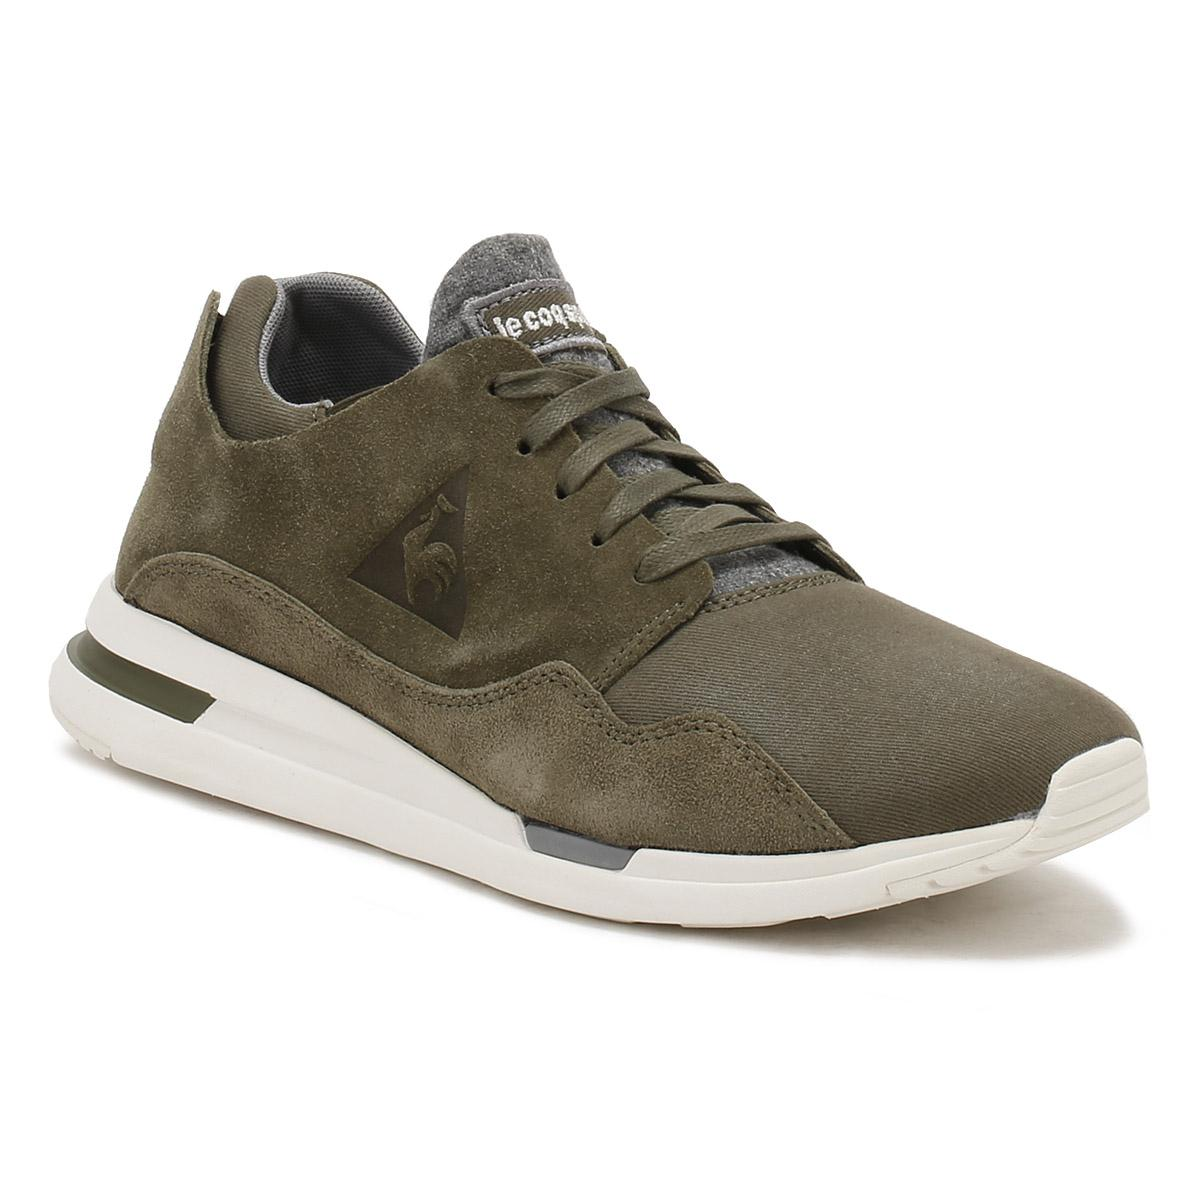 LCS R PURE WAXY CANVAS - FOOTWEAR - Low-tops & sneakers Le Coq Sportif Classic Cheap Price UPOraY